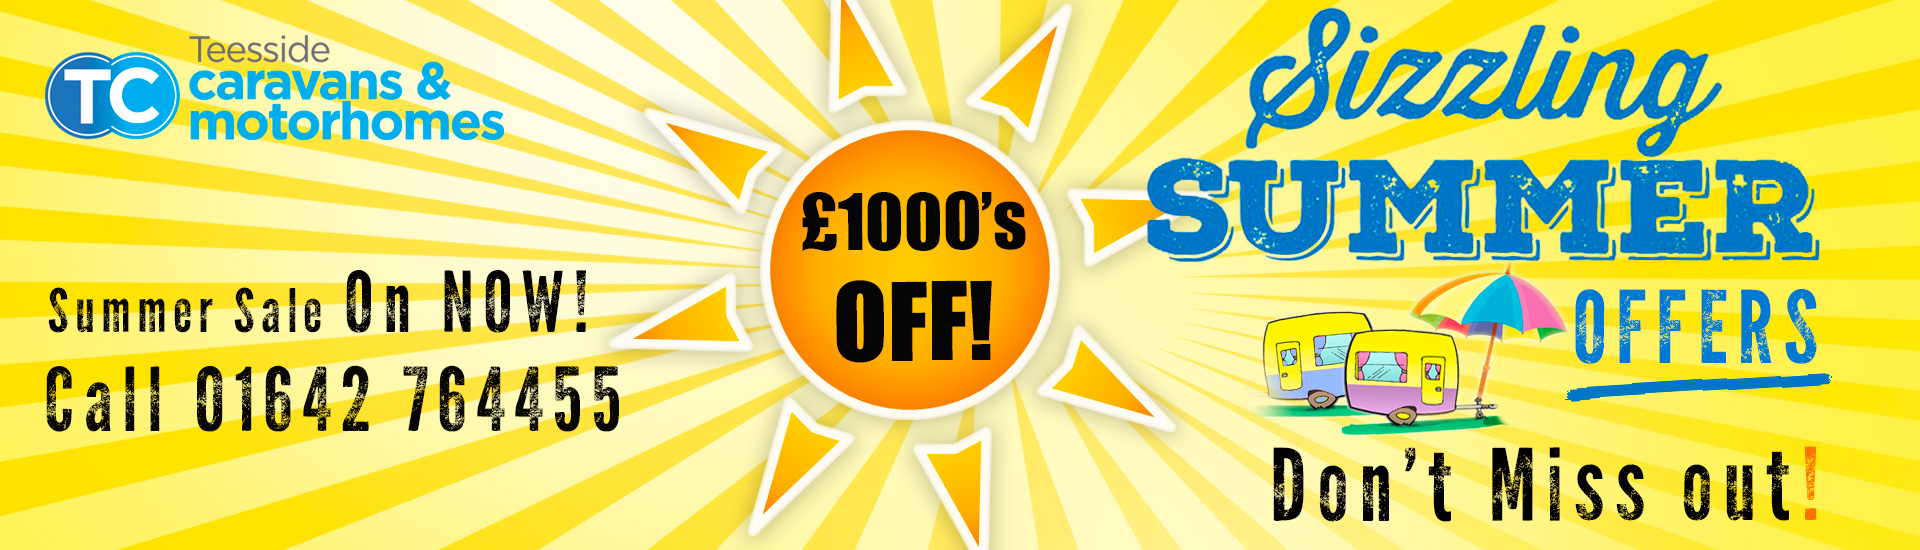 Teesside Summer Offers